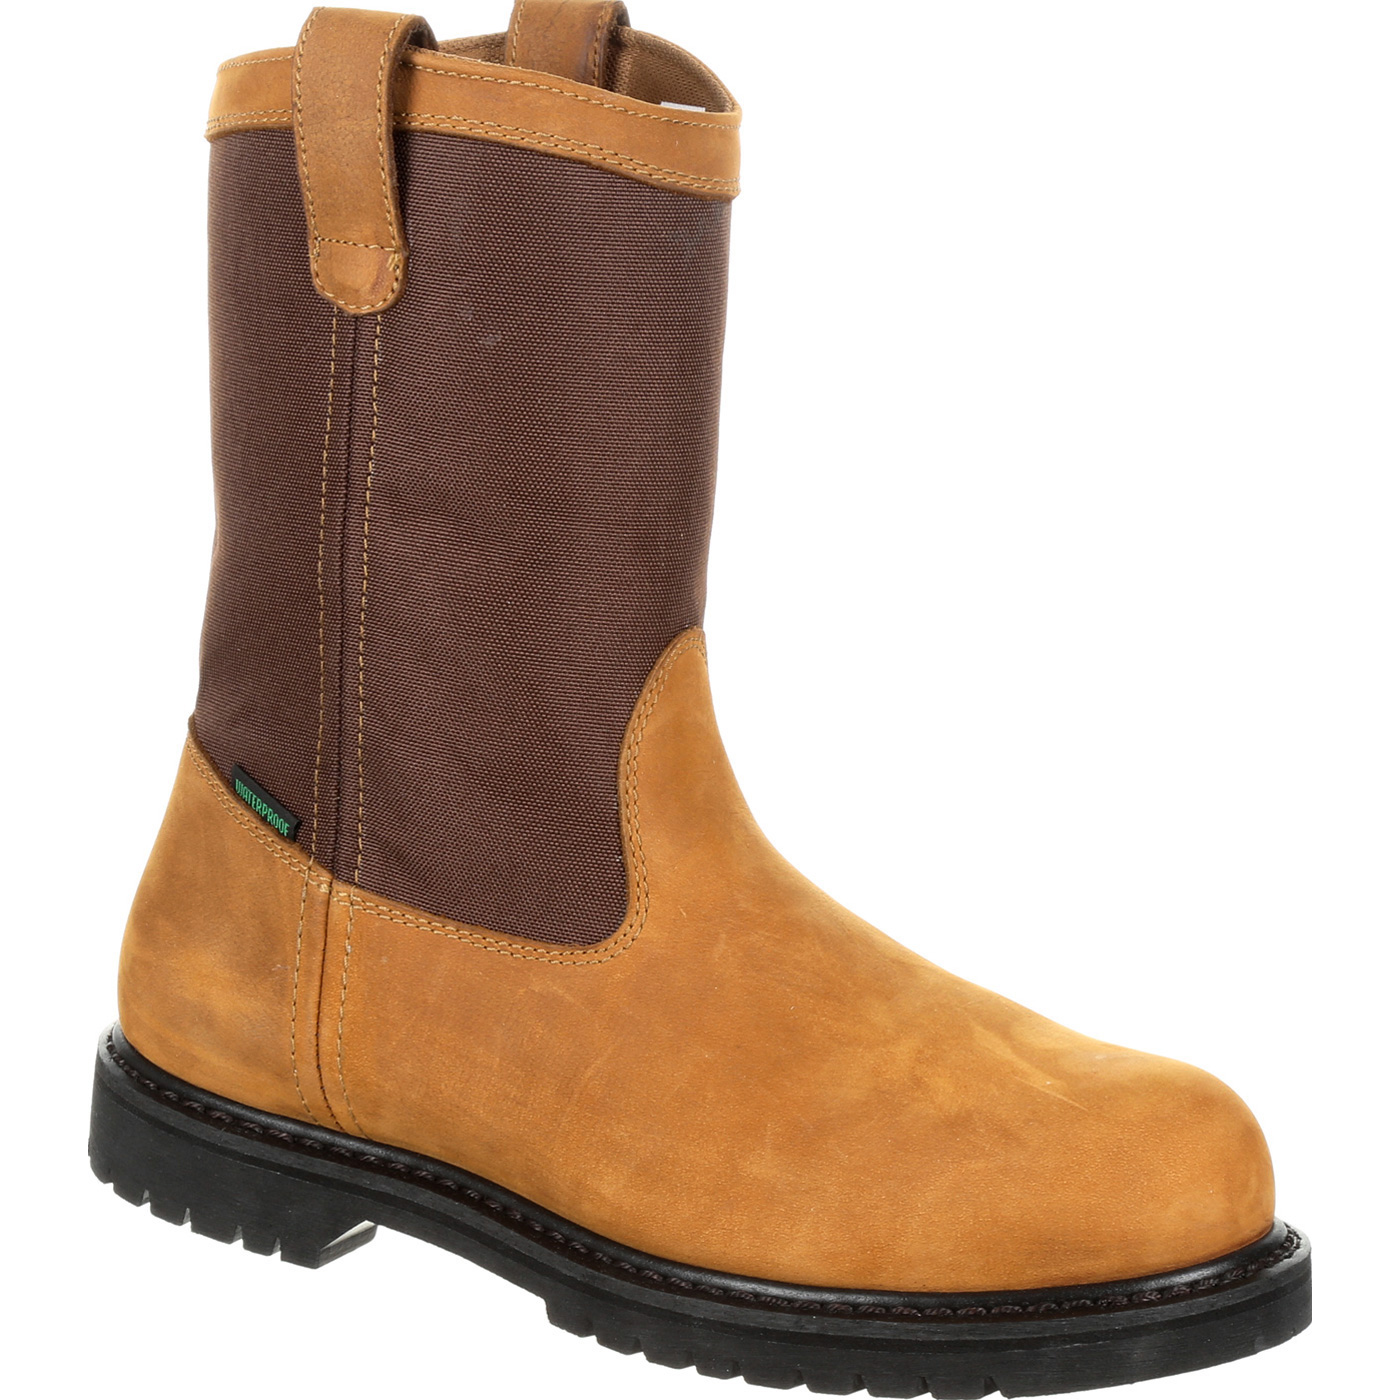 5ac1d003aa3 Lehigh Safety Shoes Men's Steel Toe Waterproof Electrical Hazard Rated  Brown Wellington Work Boots